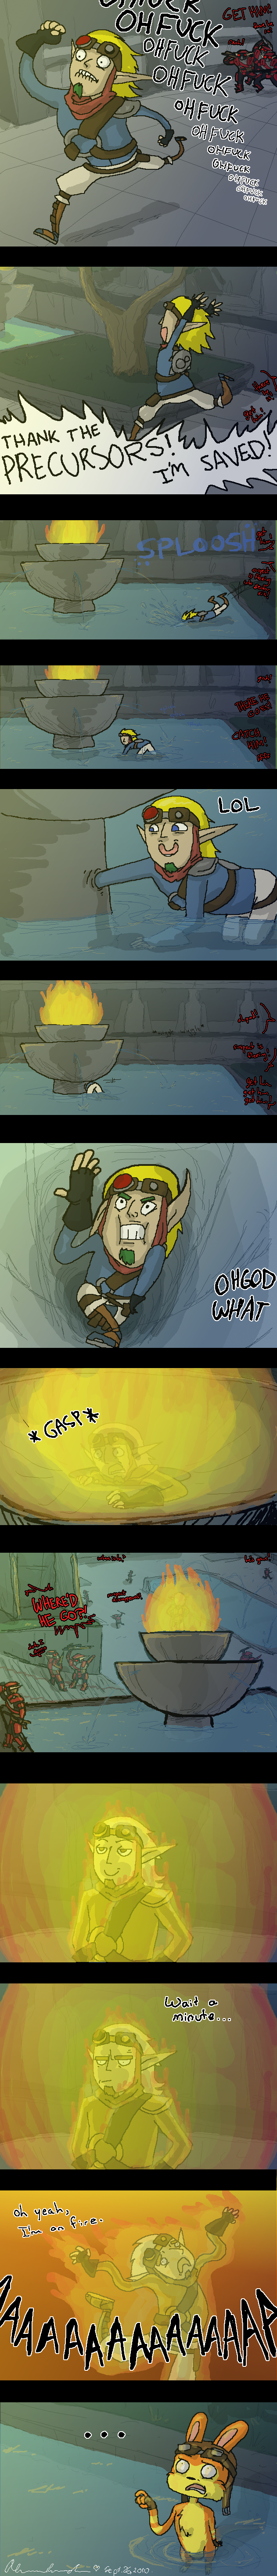 Jak 2 Fountain Glitch by Jackarais